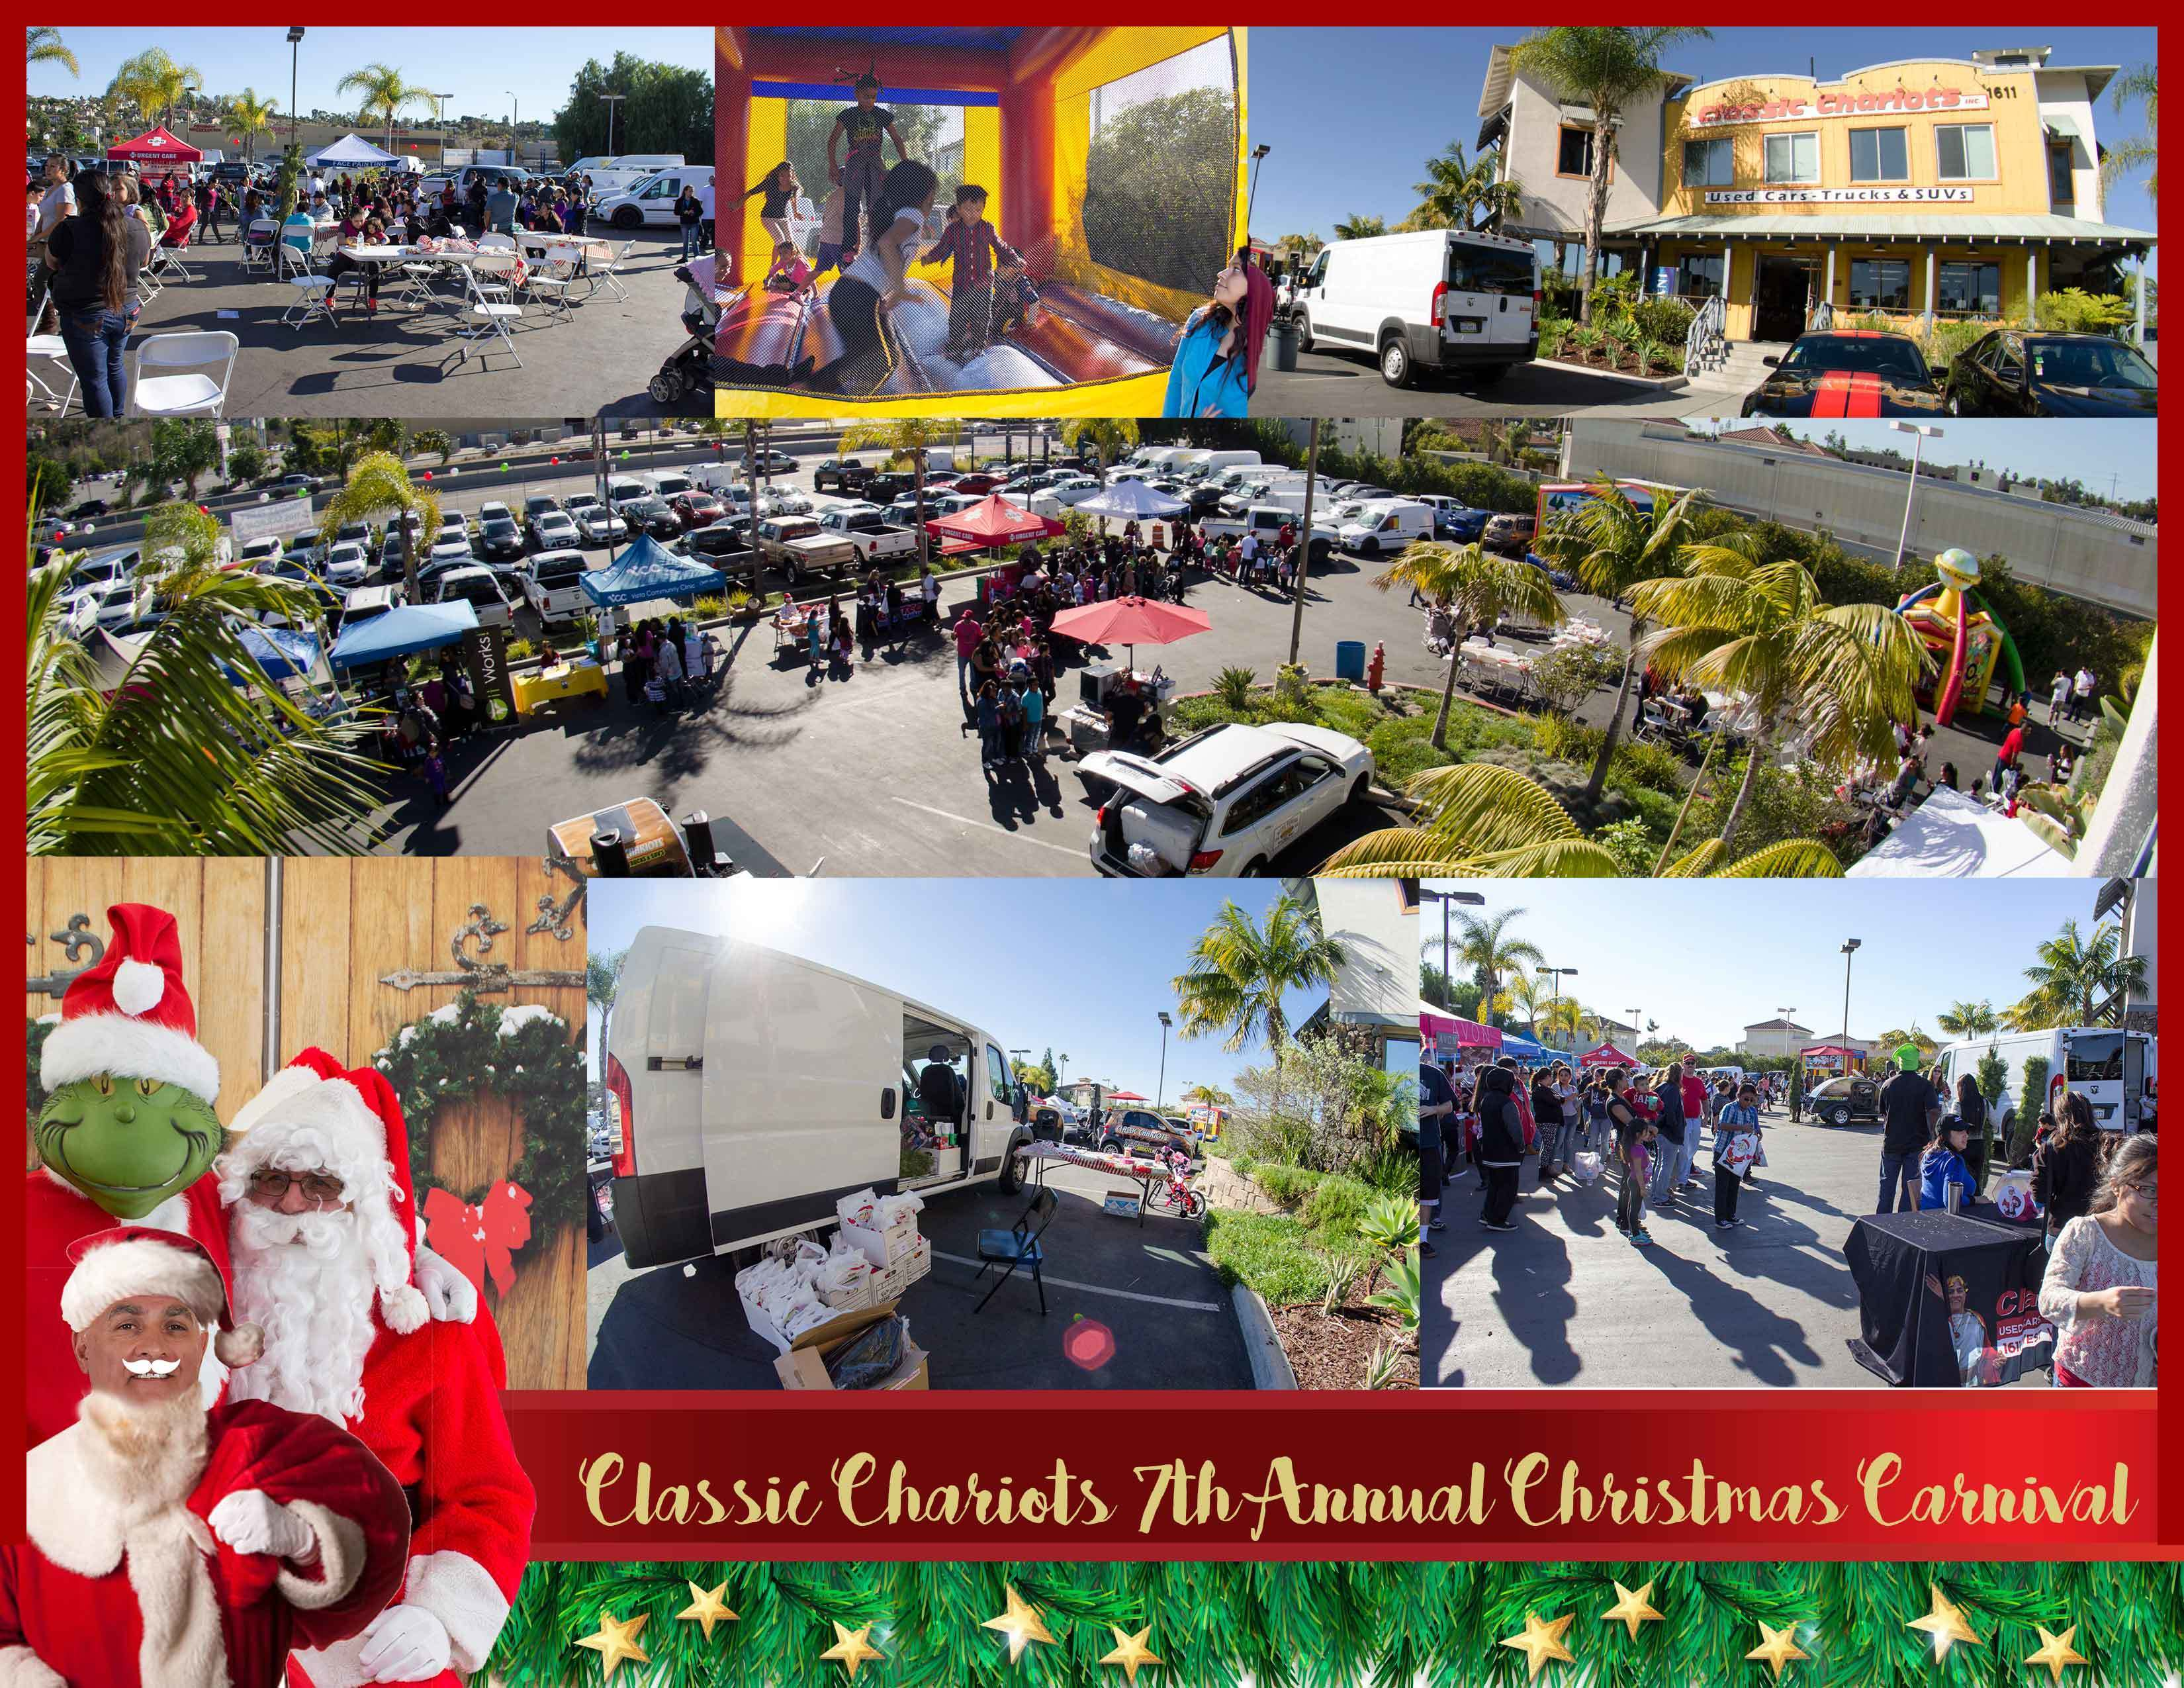 Classic Chariots 7th Annual Christmas Carnival